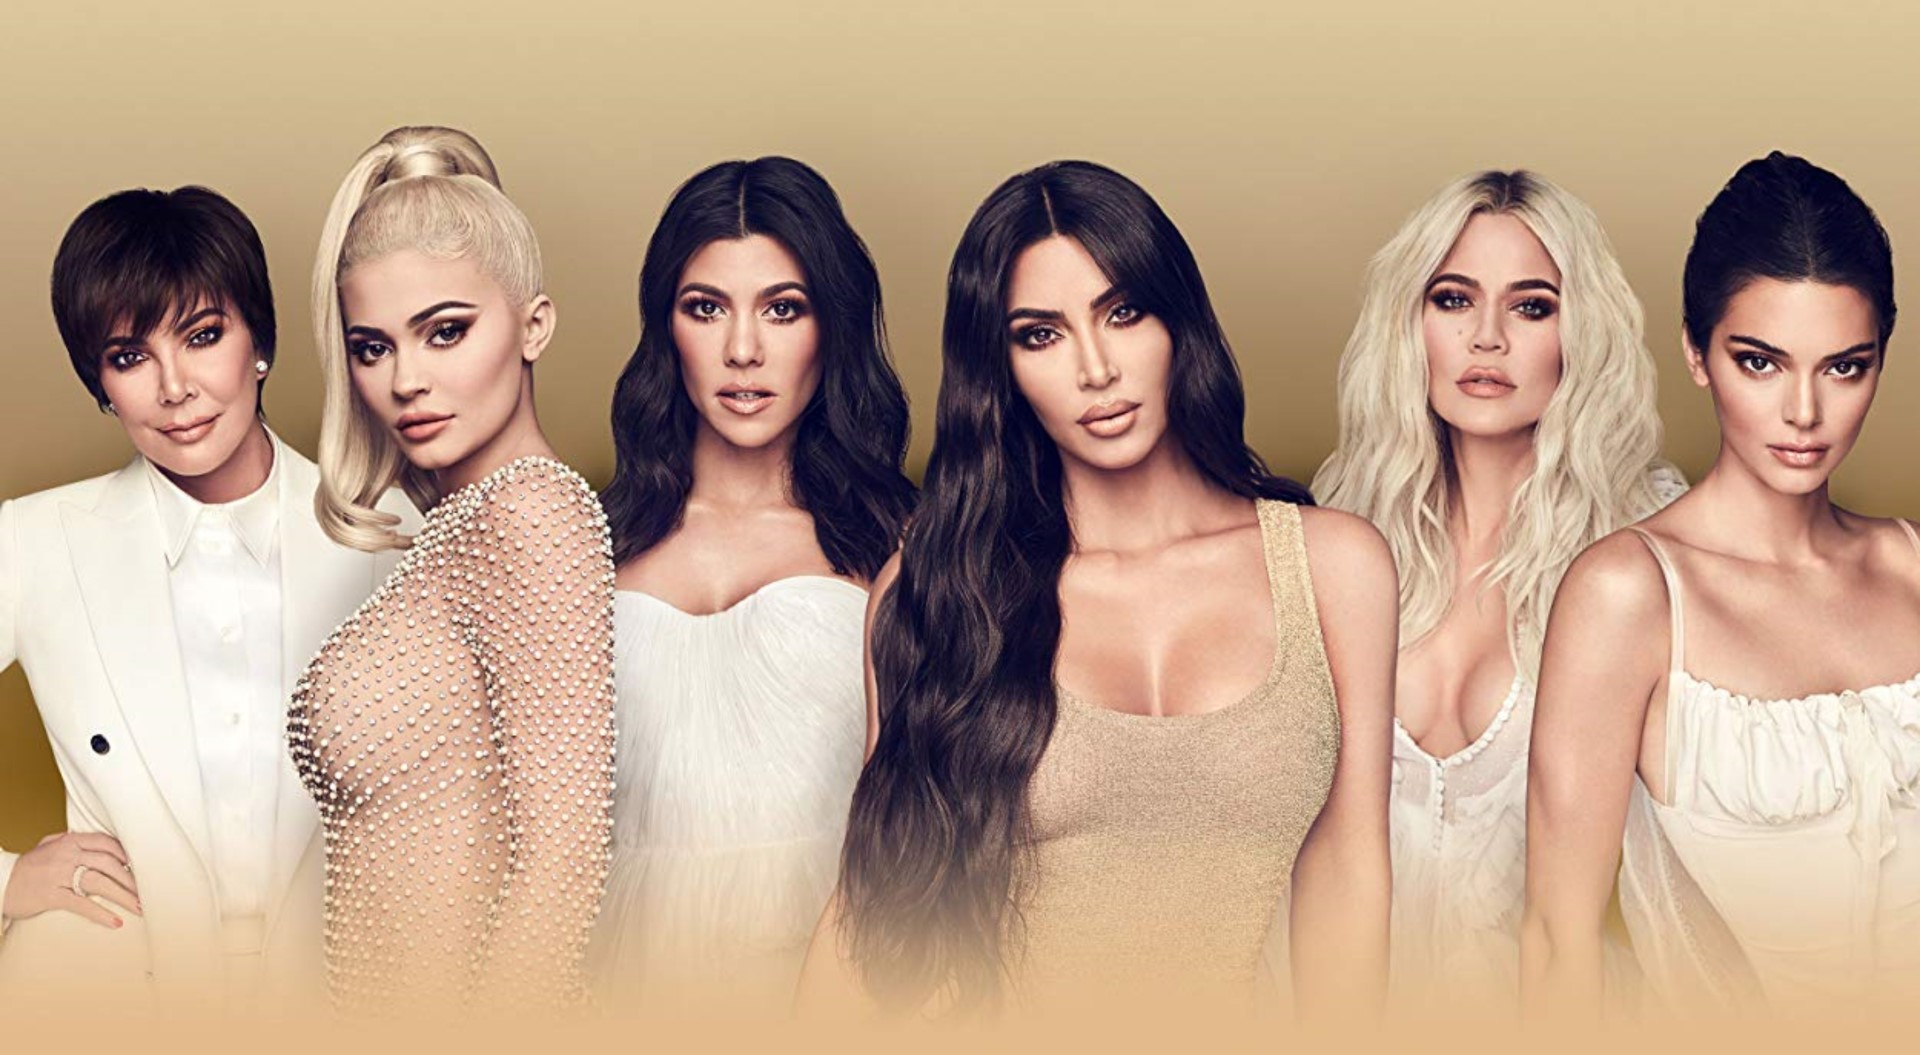 keeping up with the kardashians season 15 free stream